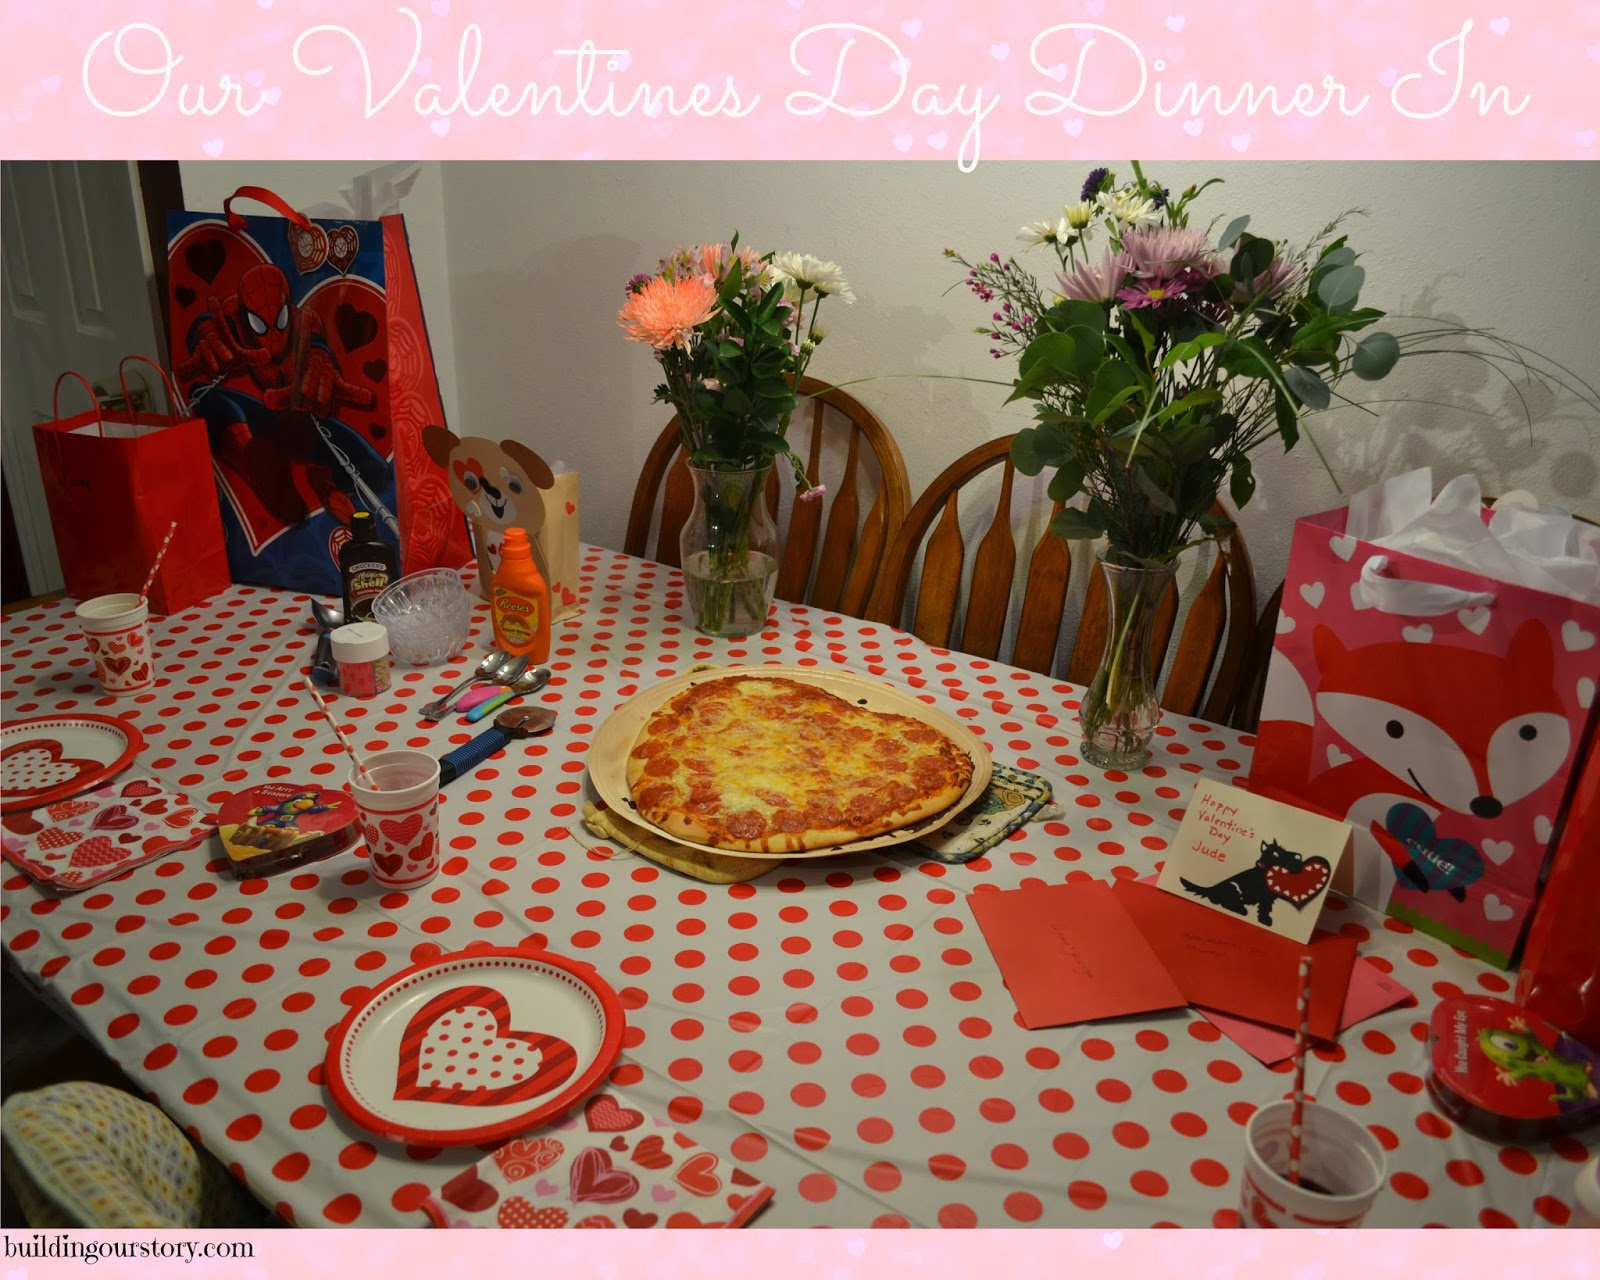 Our family valentine 39 s day dinner building our story for Valentine dinner recipes kids